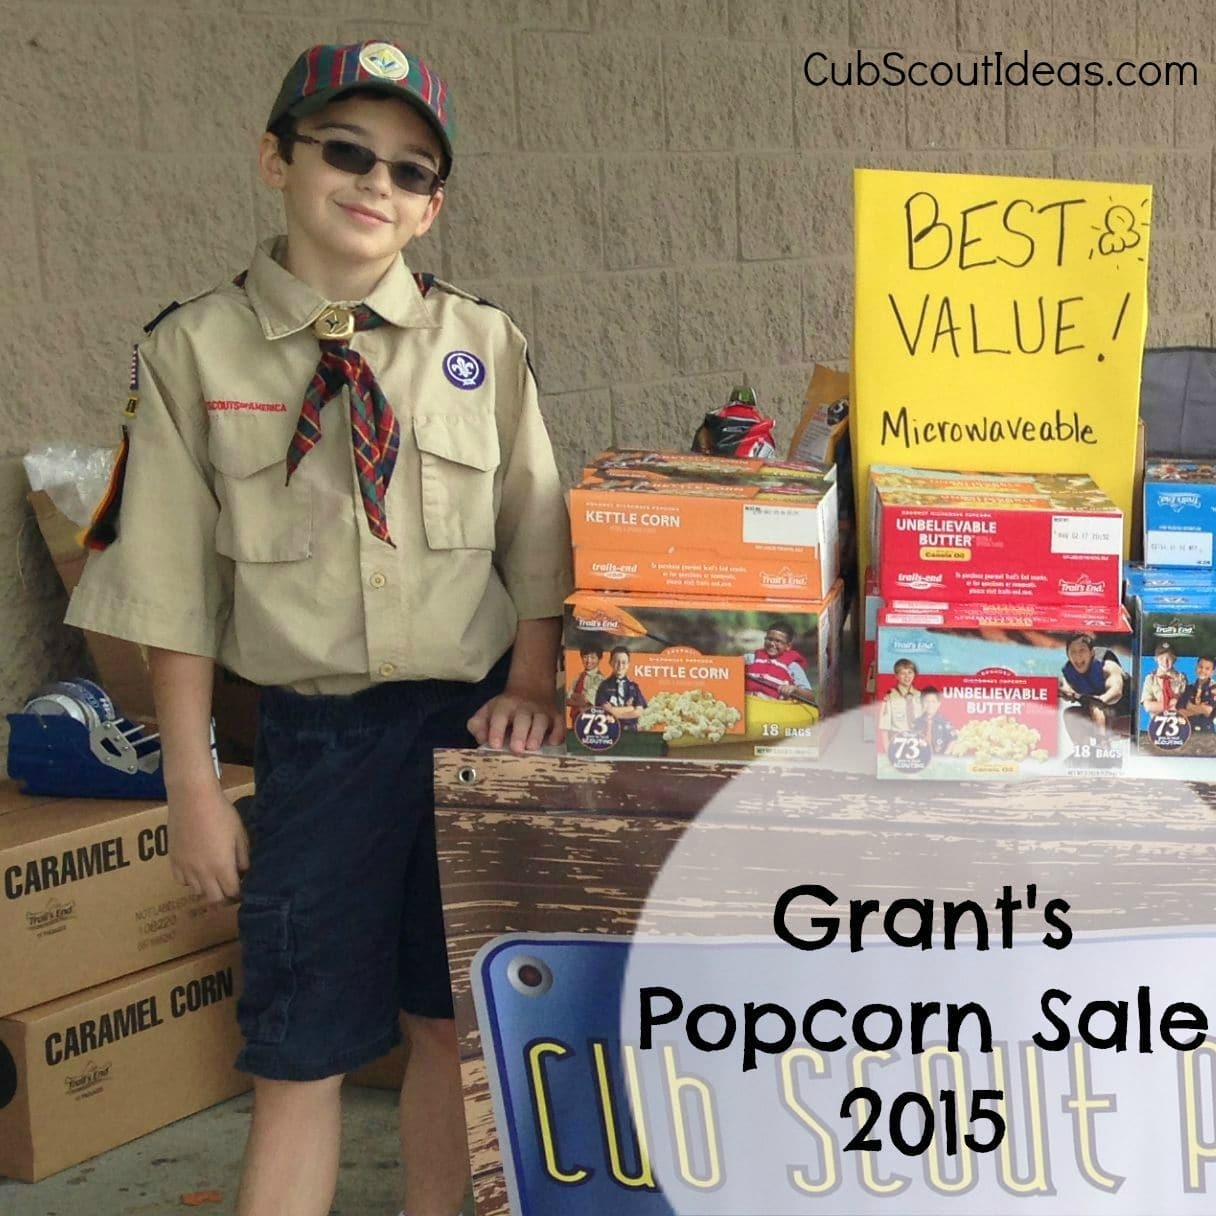 Selling Cub Scout Popcorn With Video